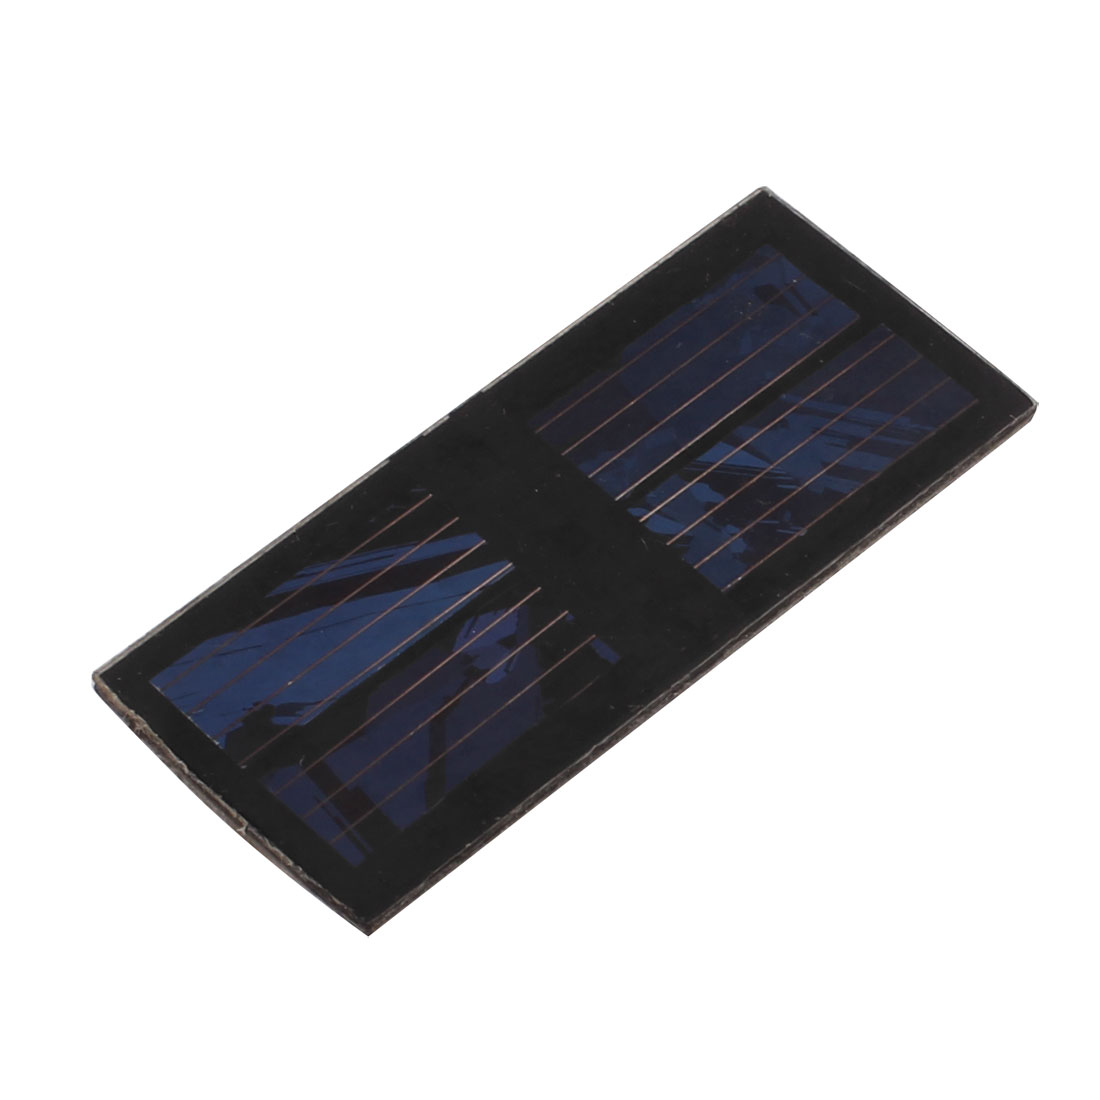 50.5mm x 22.5mm 2V 50mA Low-power Silicon Solar Panel Module Charging Board